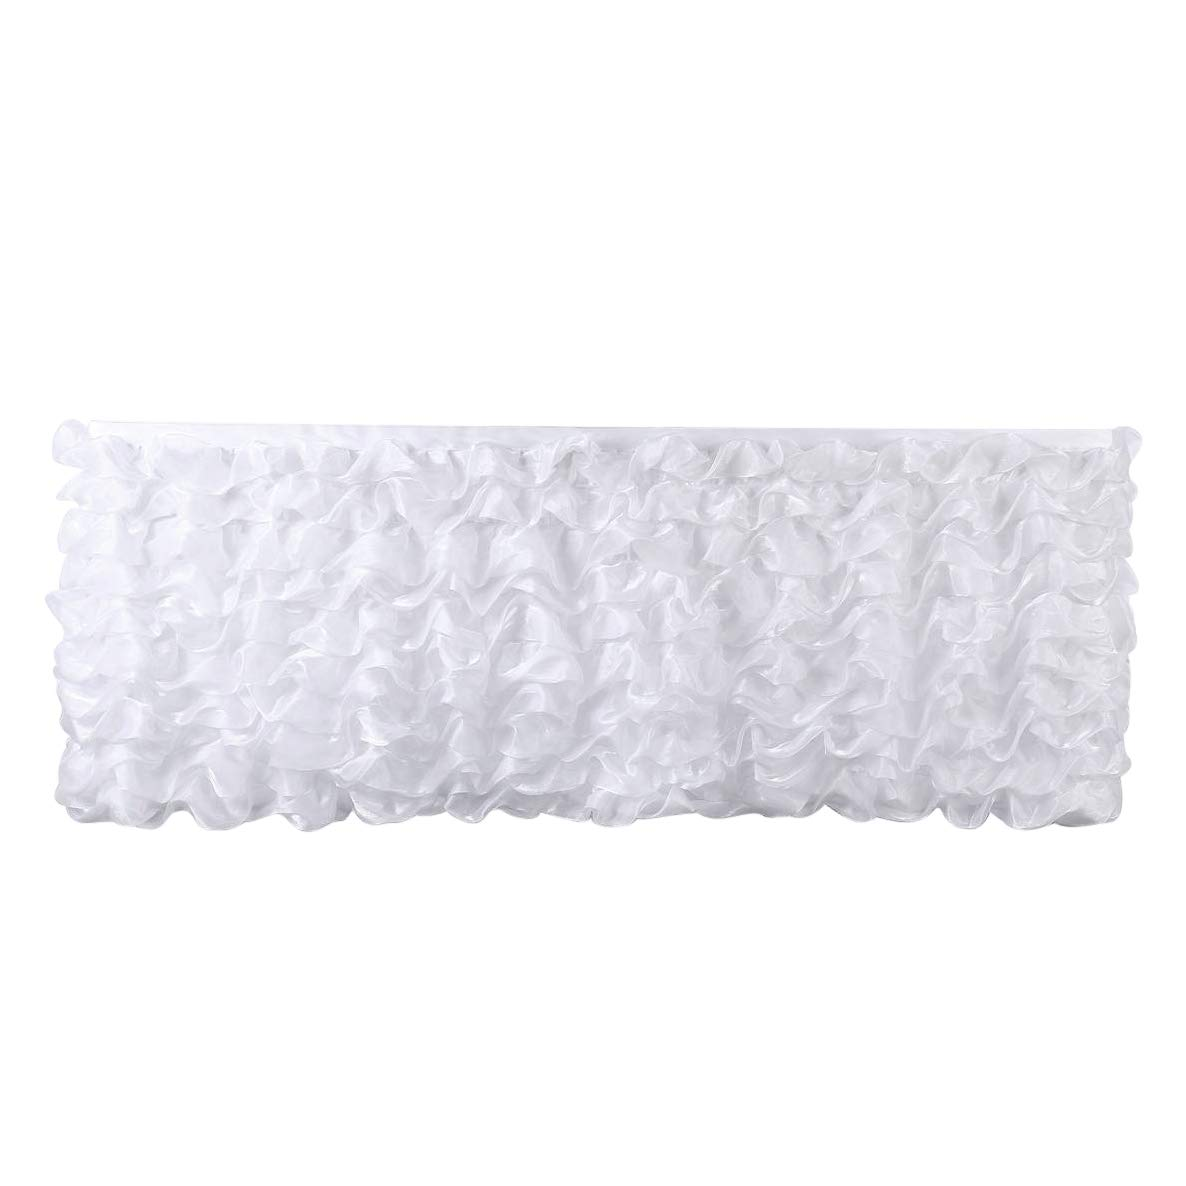 best rated disposable table covers helpful customer reviews artistic accents tablecloth deluxe white tier skirt tutu decoration skirting for wedding baby shower patio chair